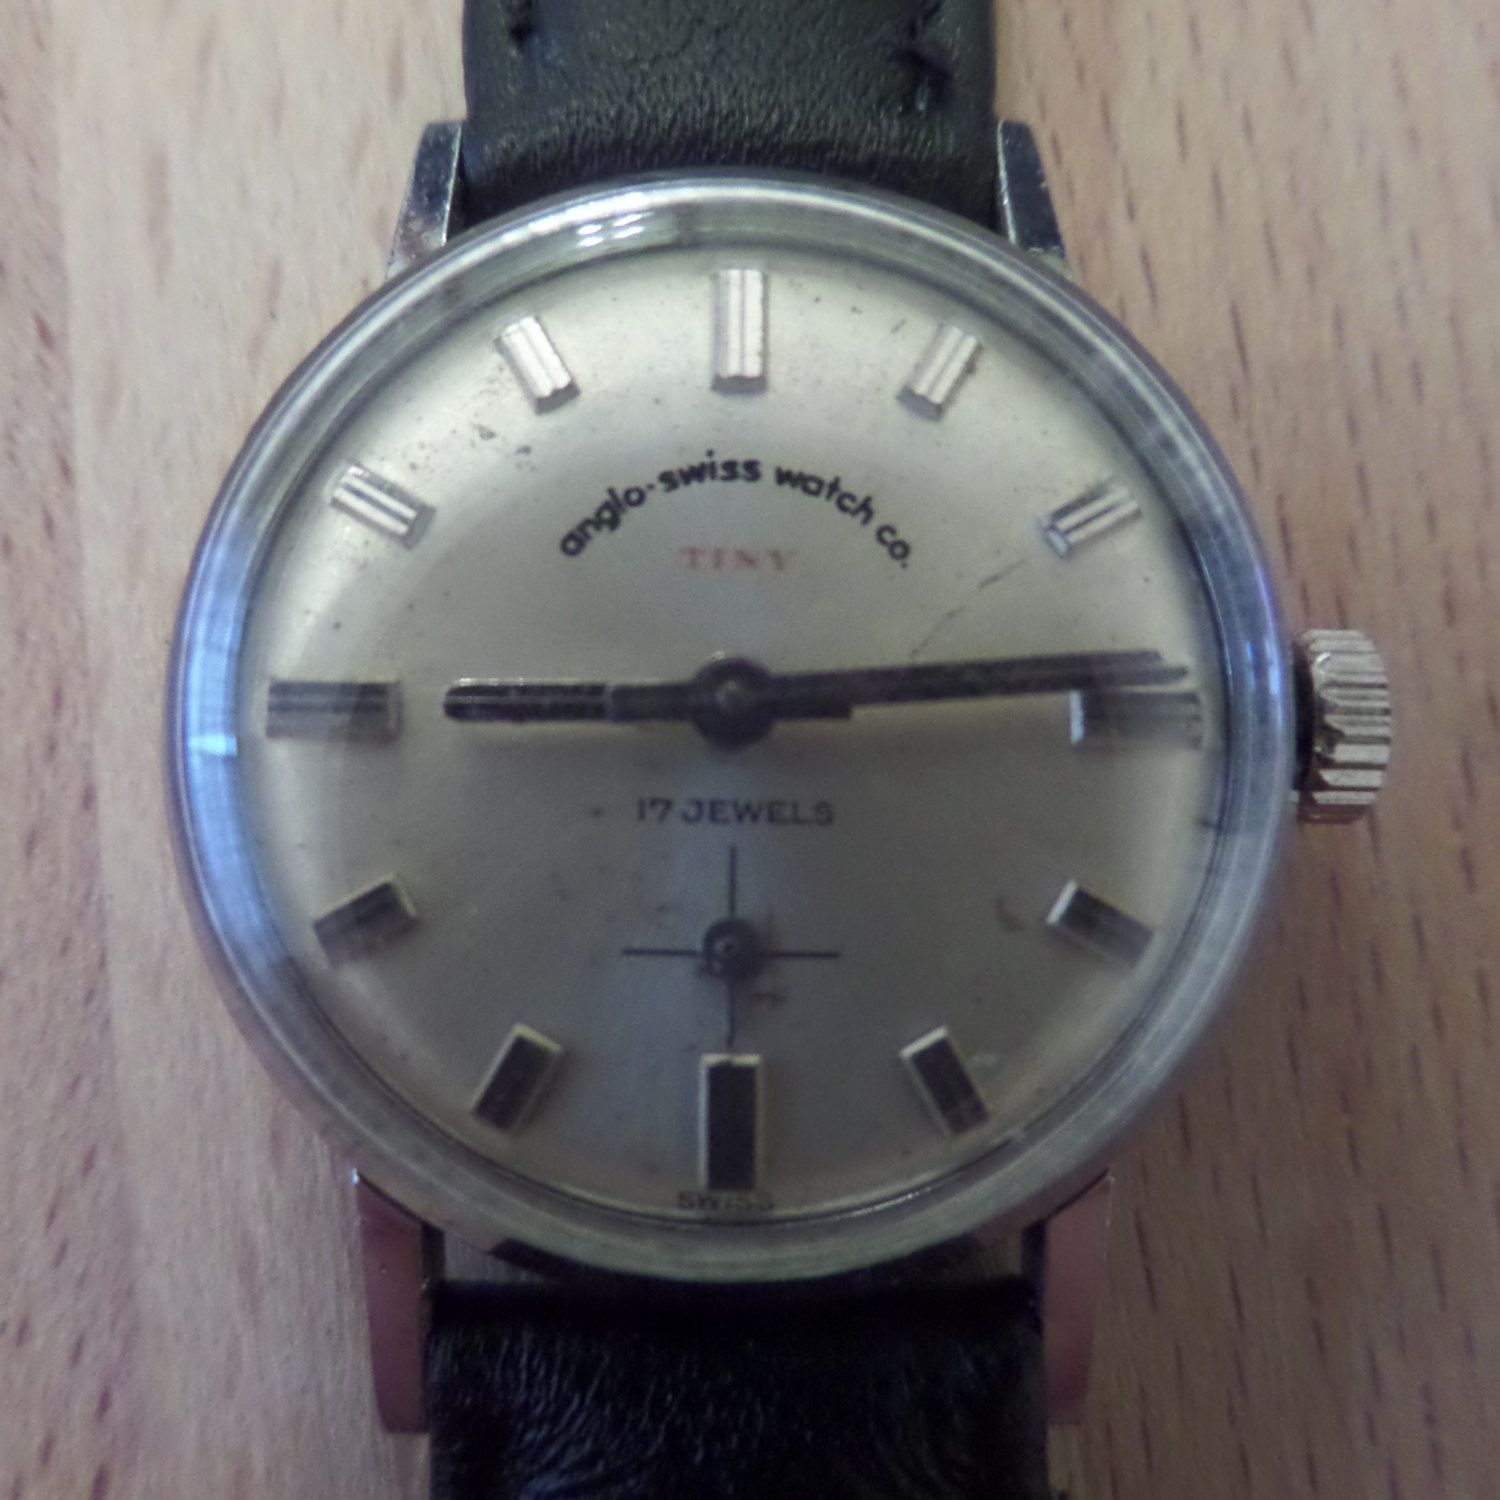 Anglo Swiss Watch Co 39 Tiny 39 1960 39 S Swiss Made Untouched Guaranteed Genuine Ladies Manual Mechanism Wris Swiss Watches Retro Watches Watches